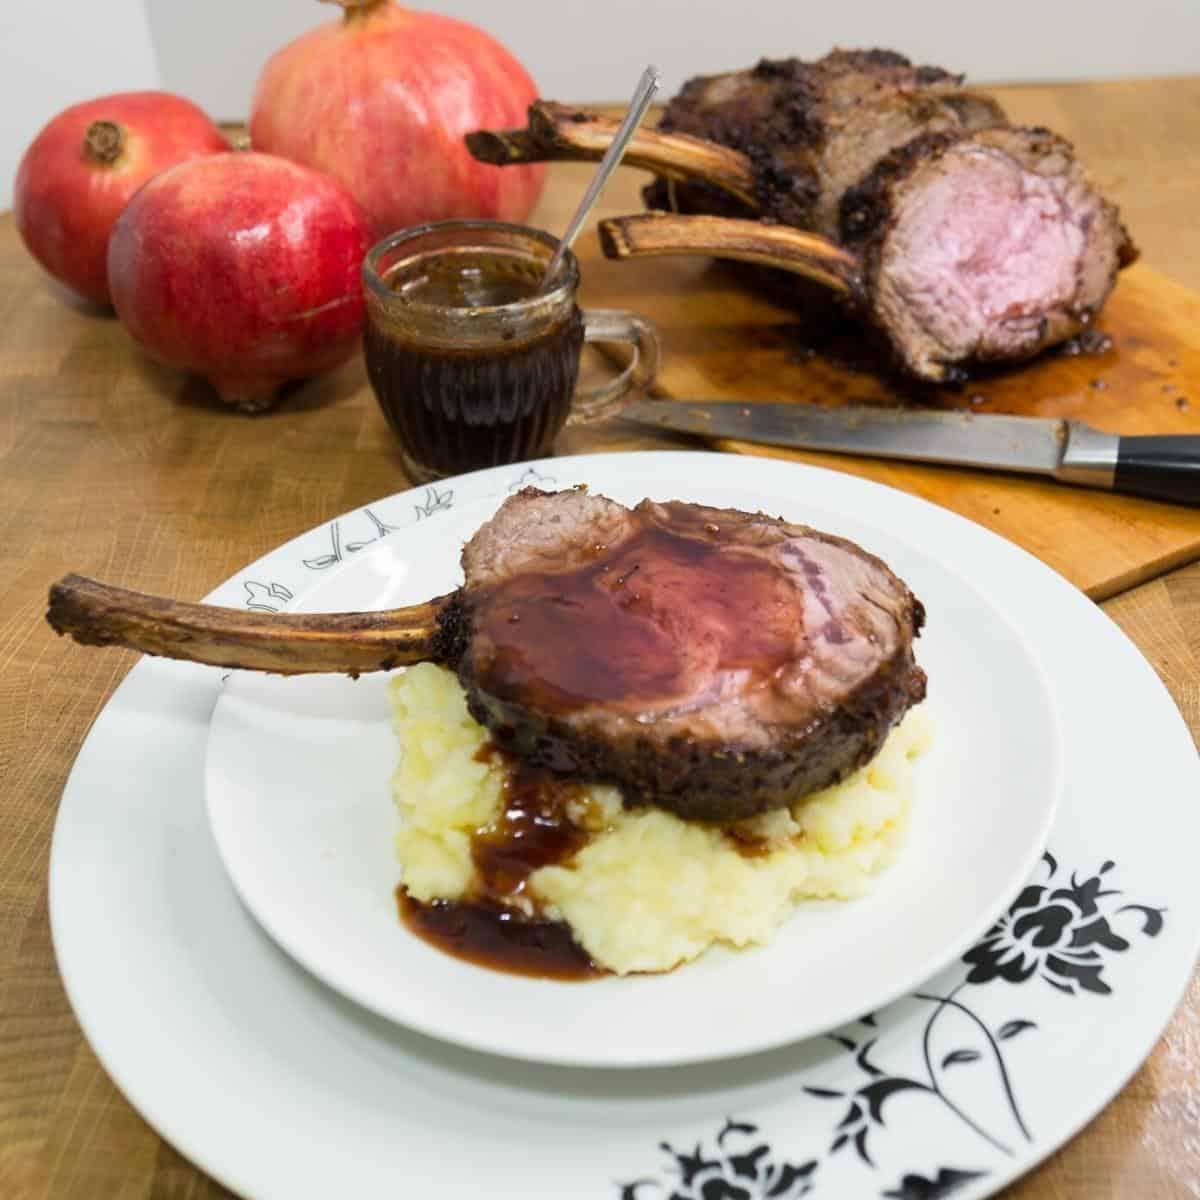 A plate with mashed potato and prime rib.